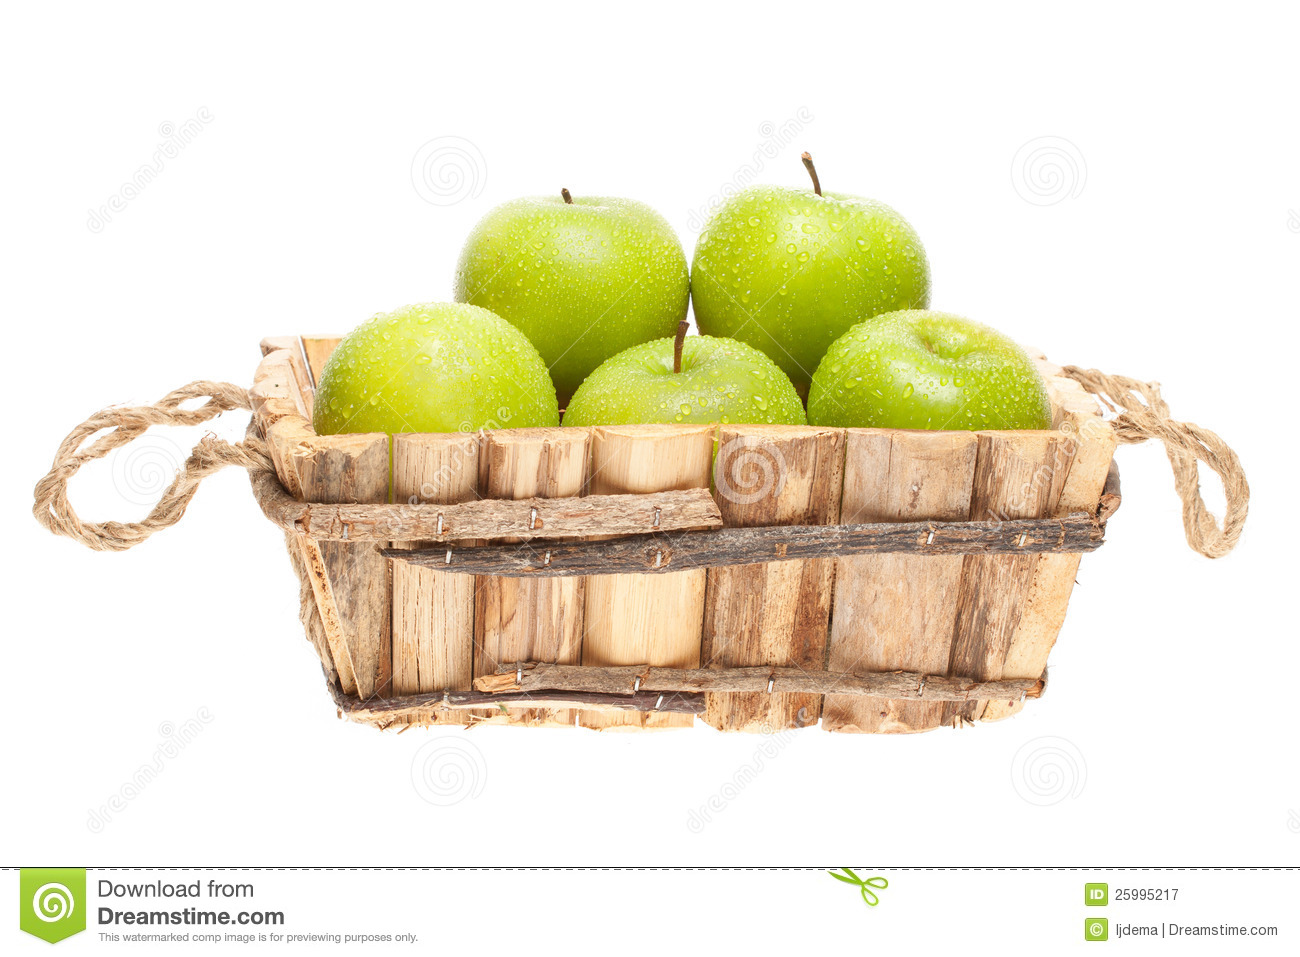 green and red apples in basket. royalty-free stock photo. download green apples in a wooden basket and red